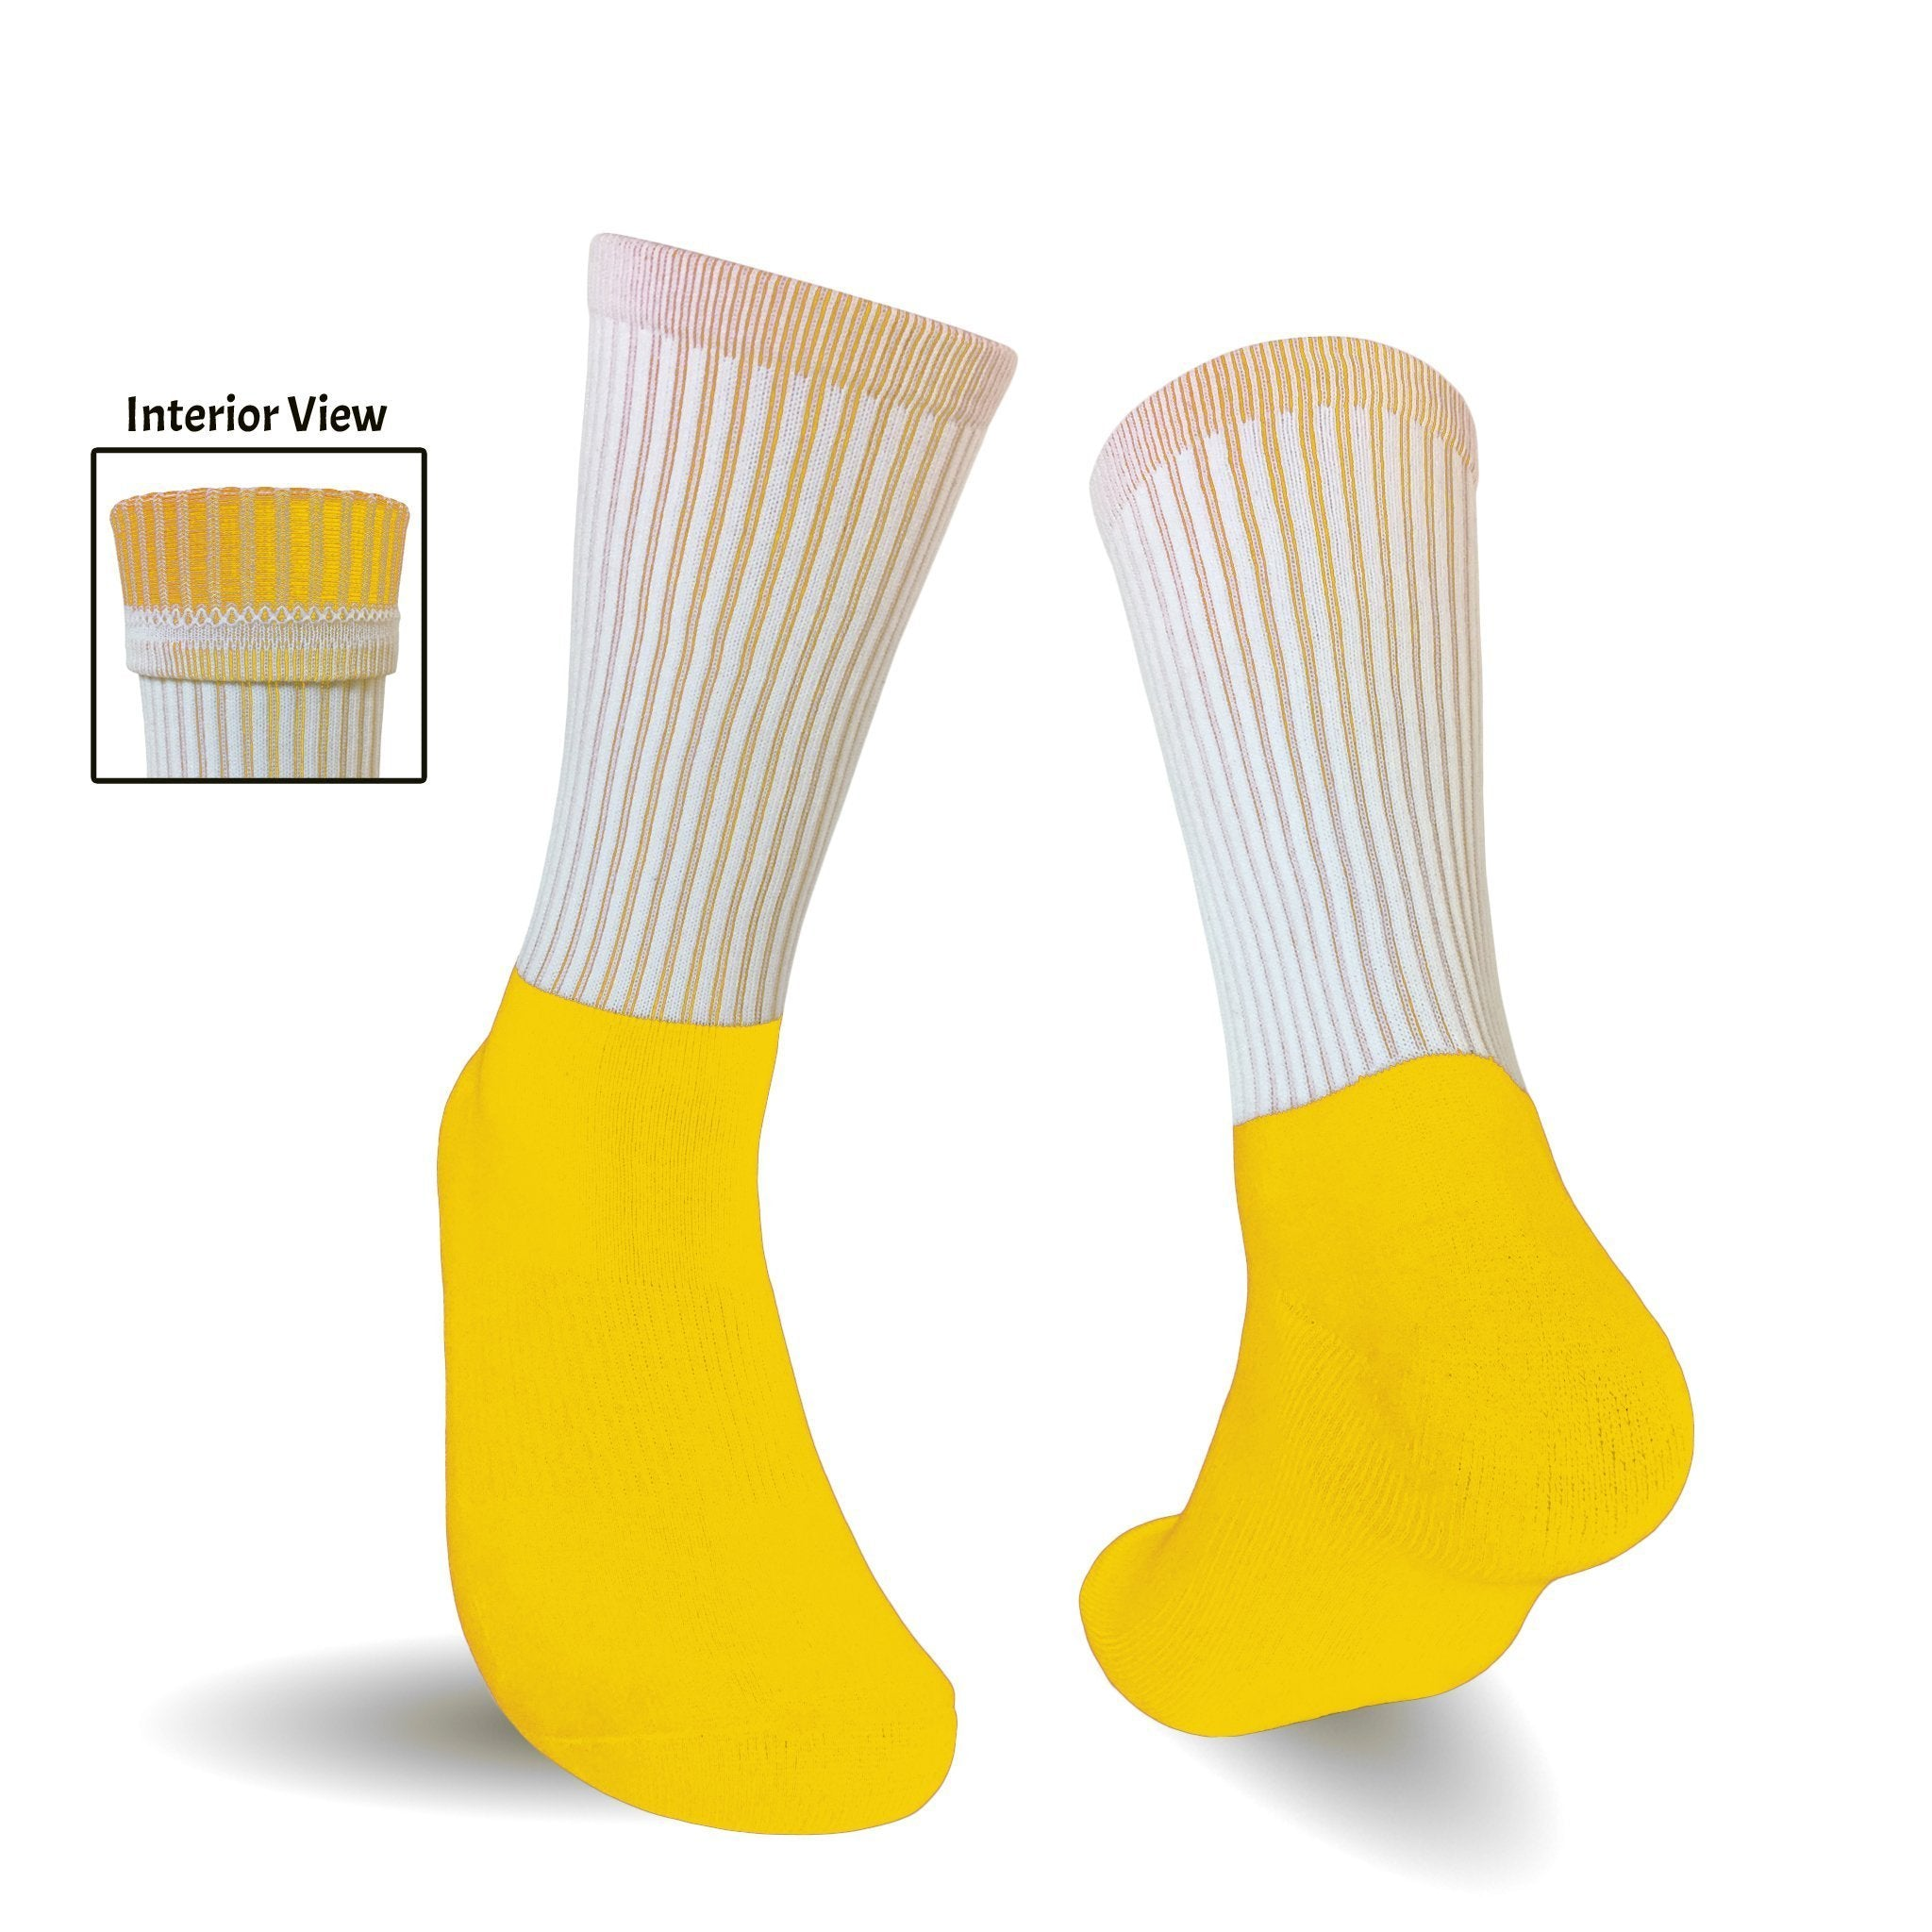 Blank Athletic Socks- Yellow Foot Yellow Interior Socks for Sublimation